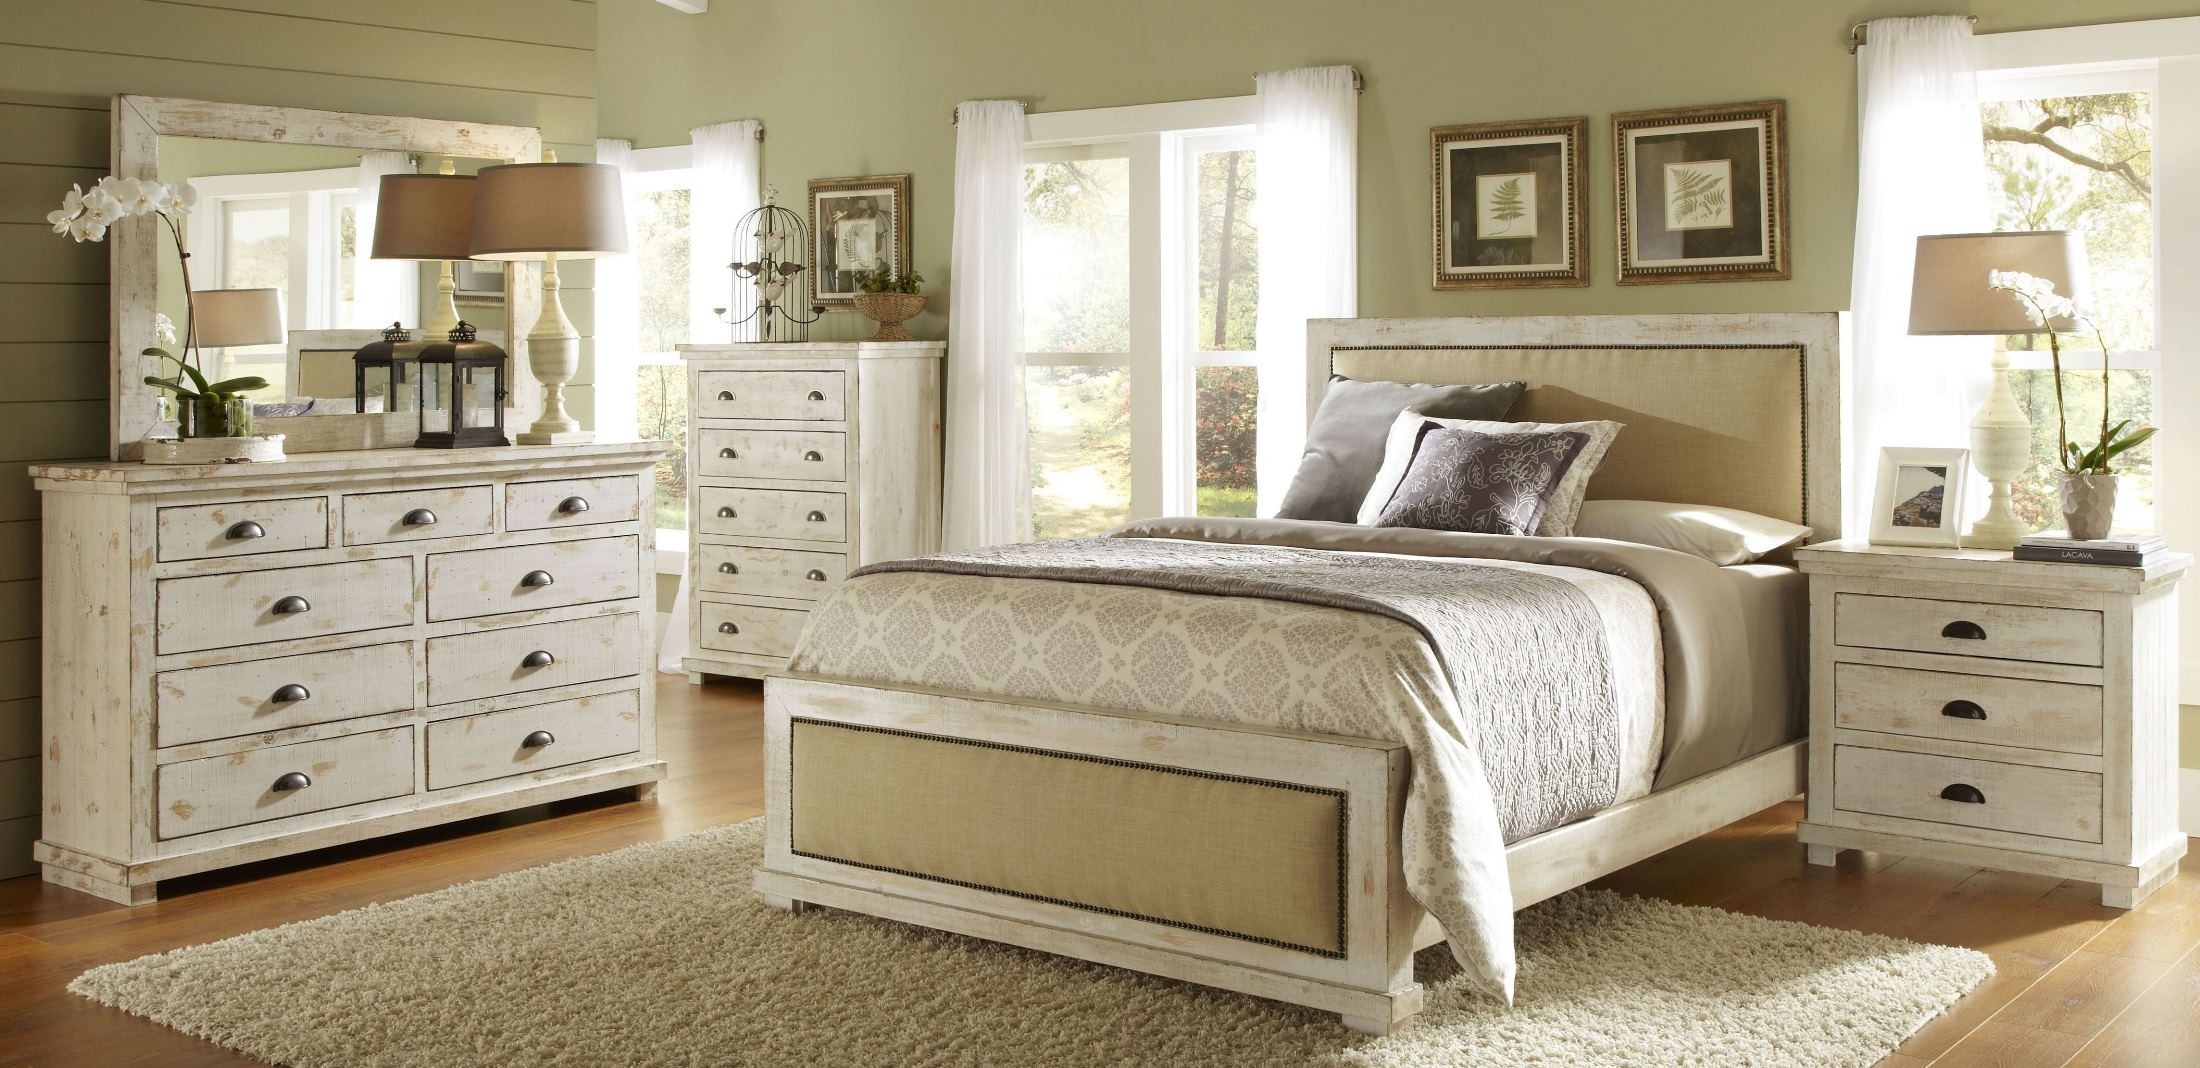 Willow distressed white upholstered bedroom set p610 34 - Distressed bedroom furniture sets ...